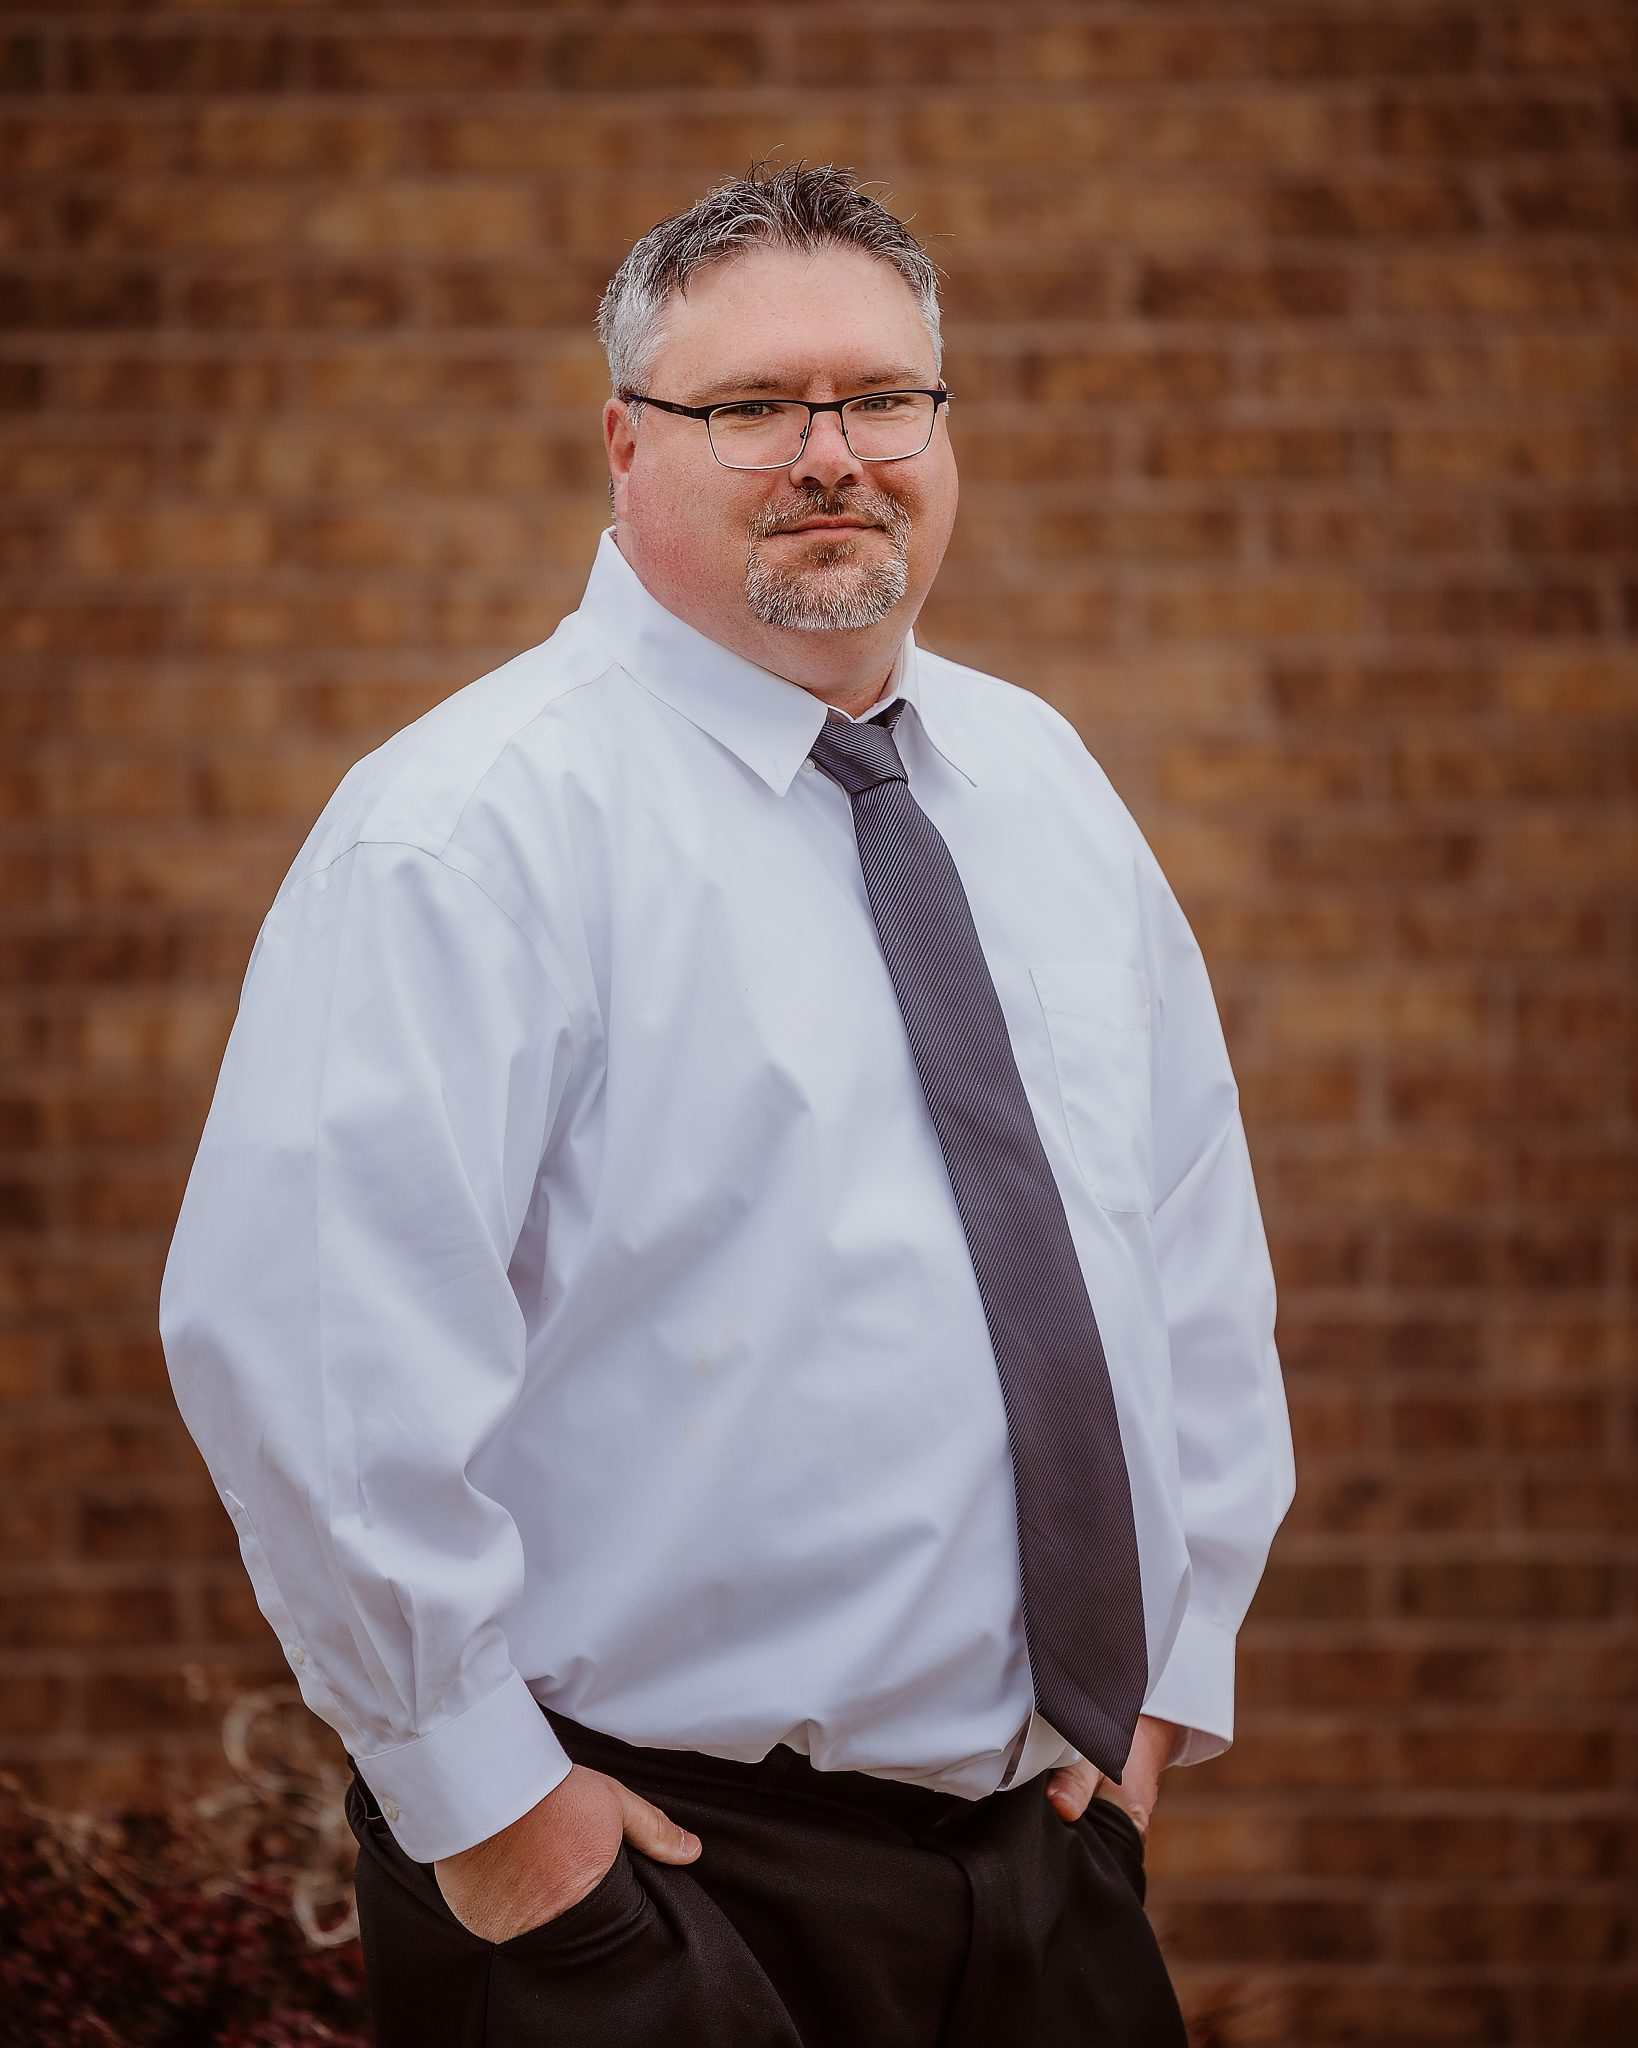 David has been in the transportation industry for over 20 years. He has worked in operations, sales, warehouse, FTL, LTL, and air freight. He is married with four boys and enjoys spending his free time with his family and friends.